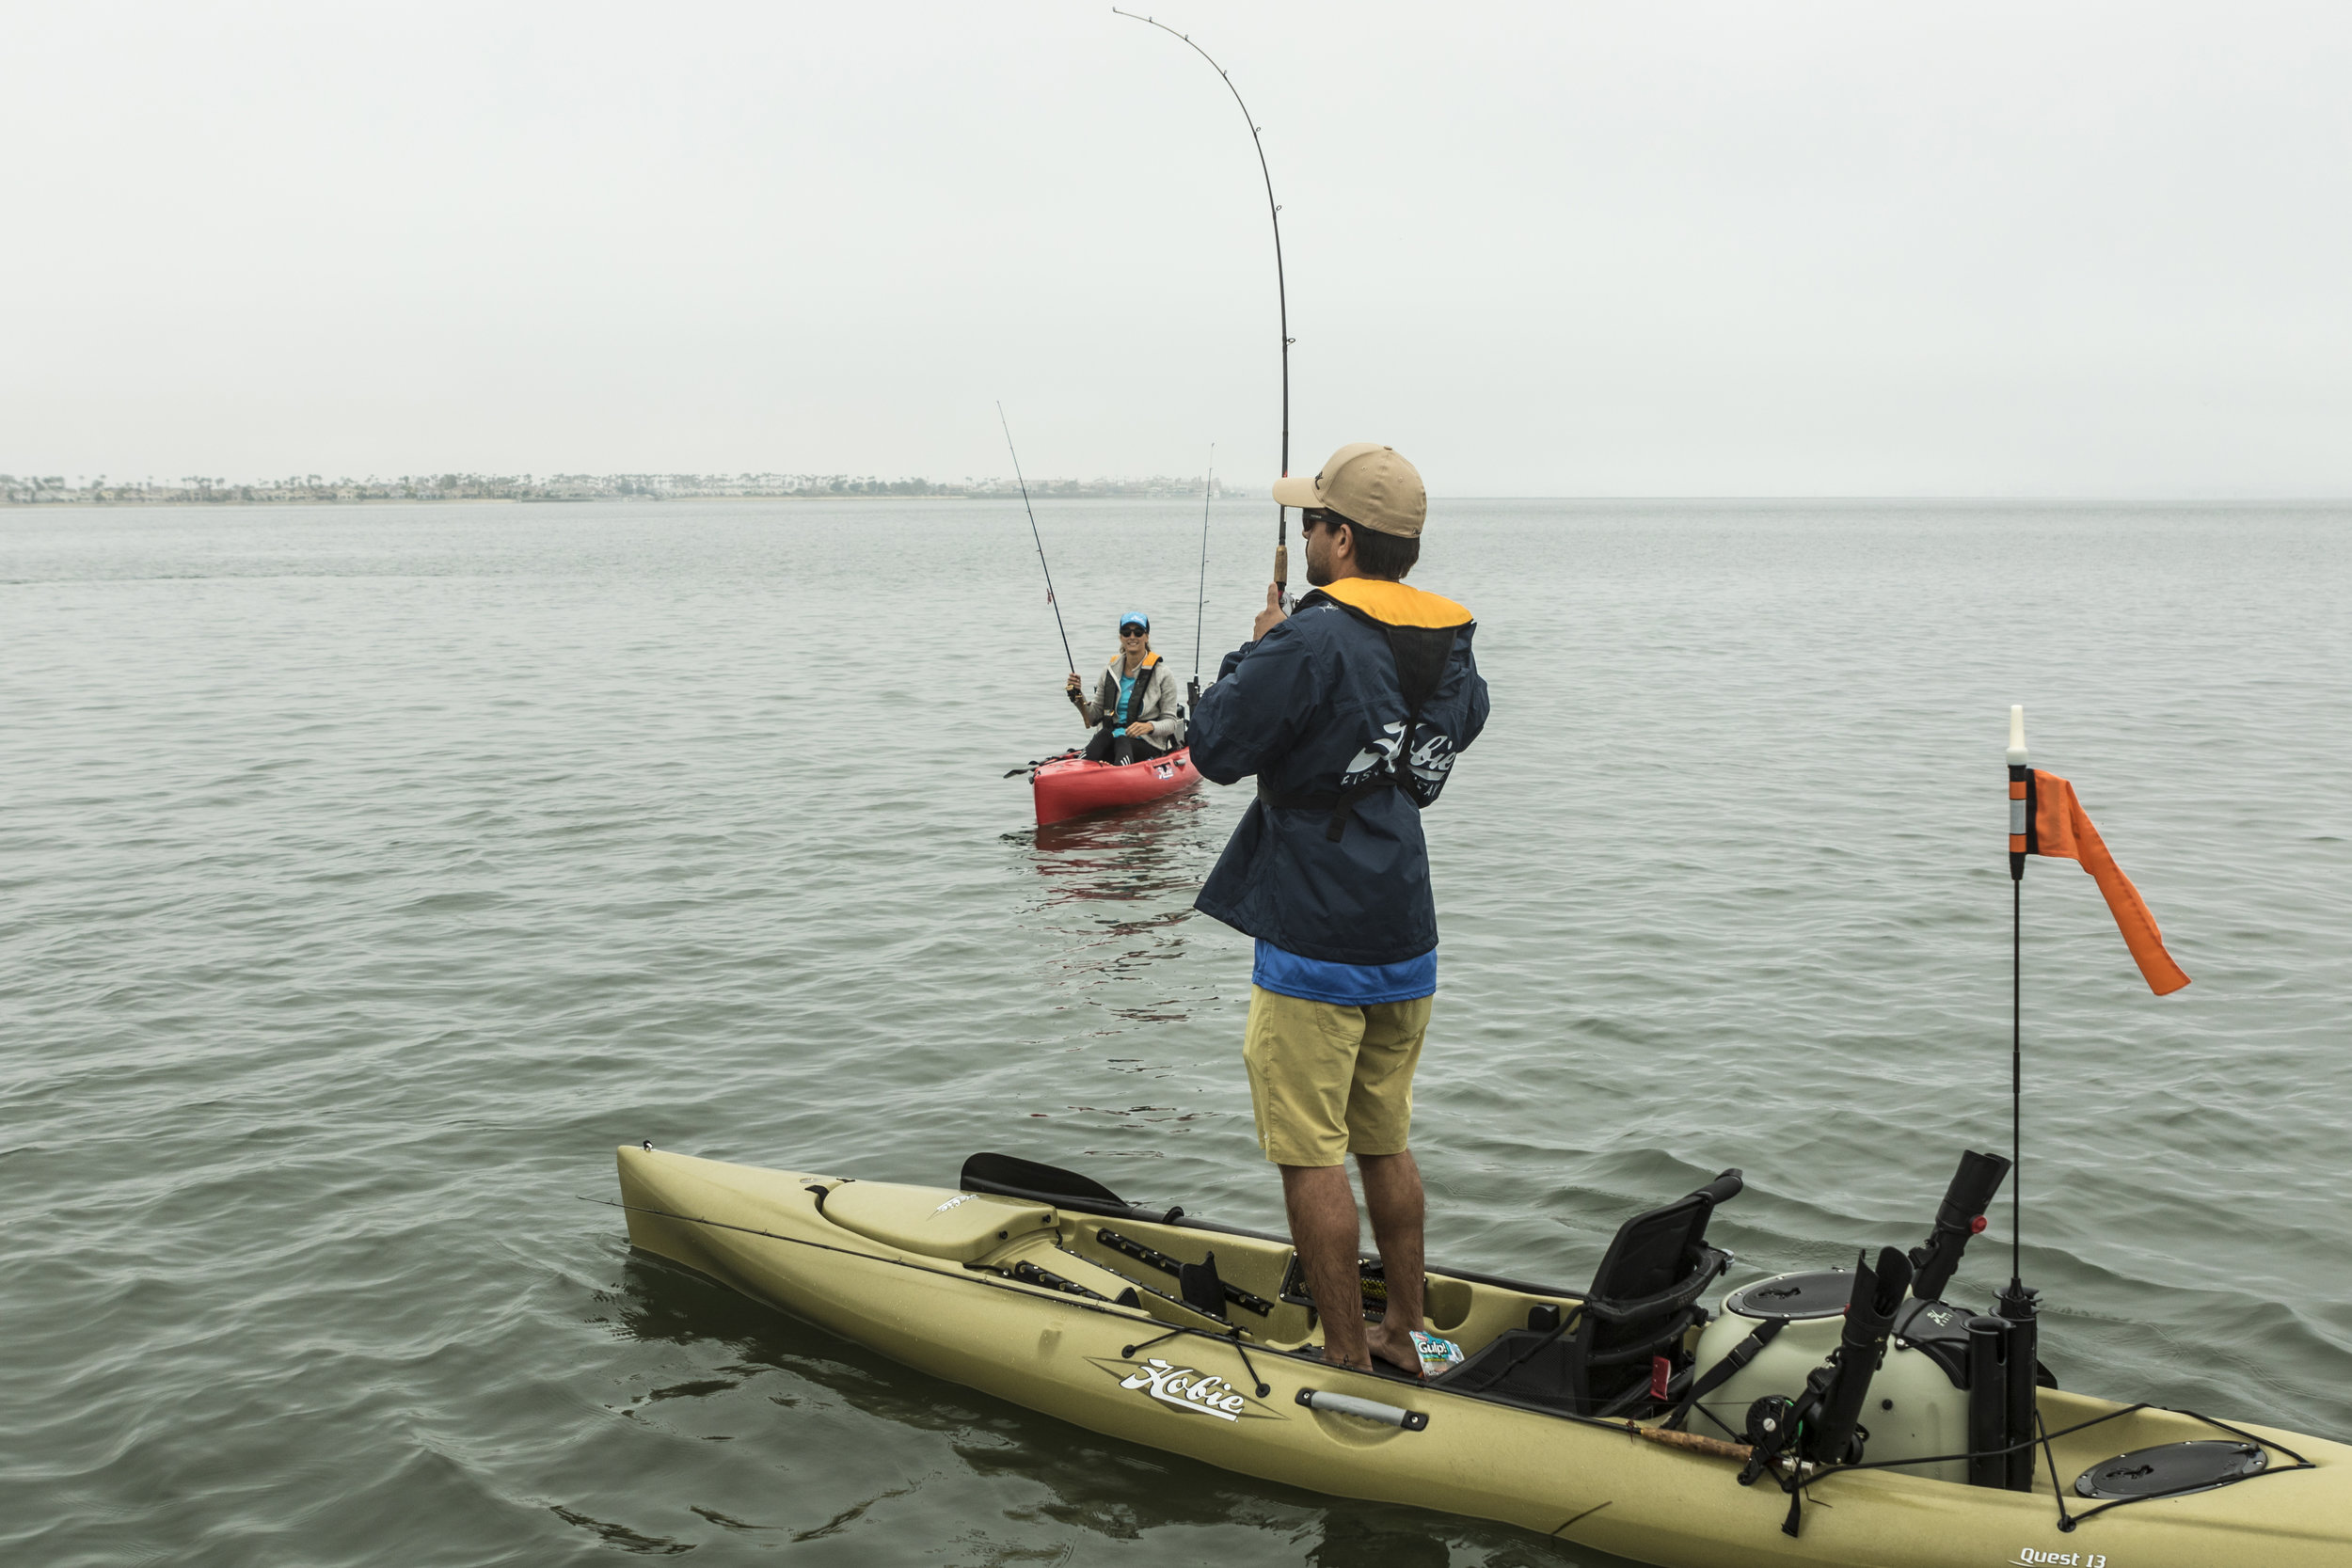 Quest13_fishing_Howie_olive_standing_9182_full.jpg